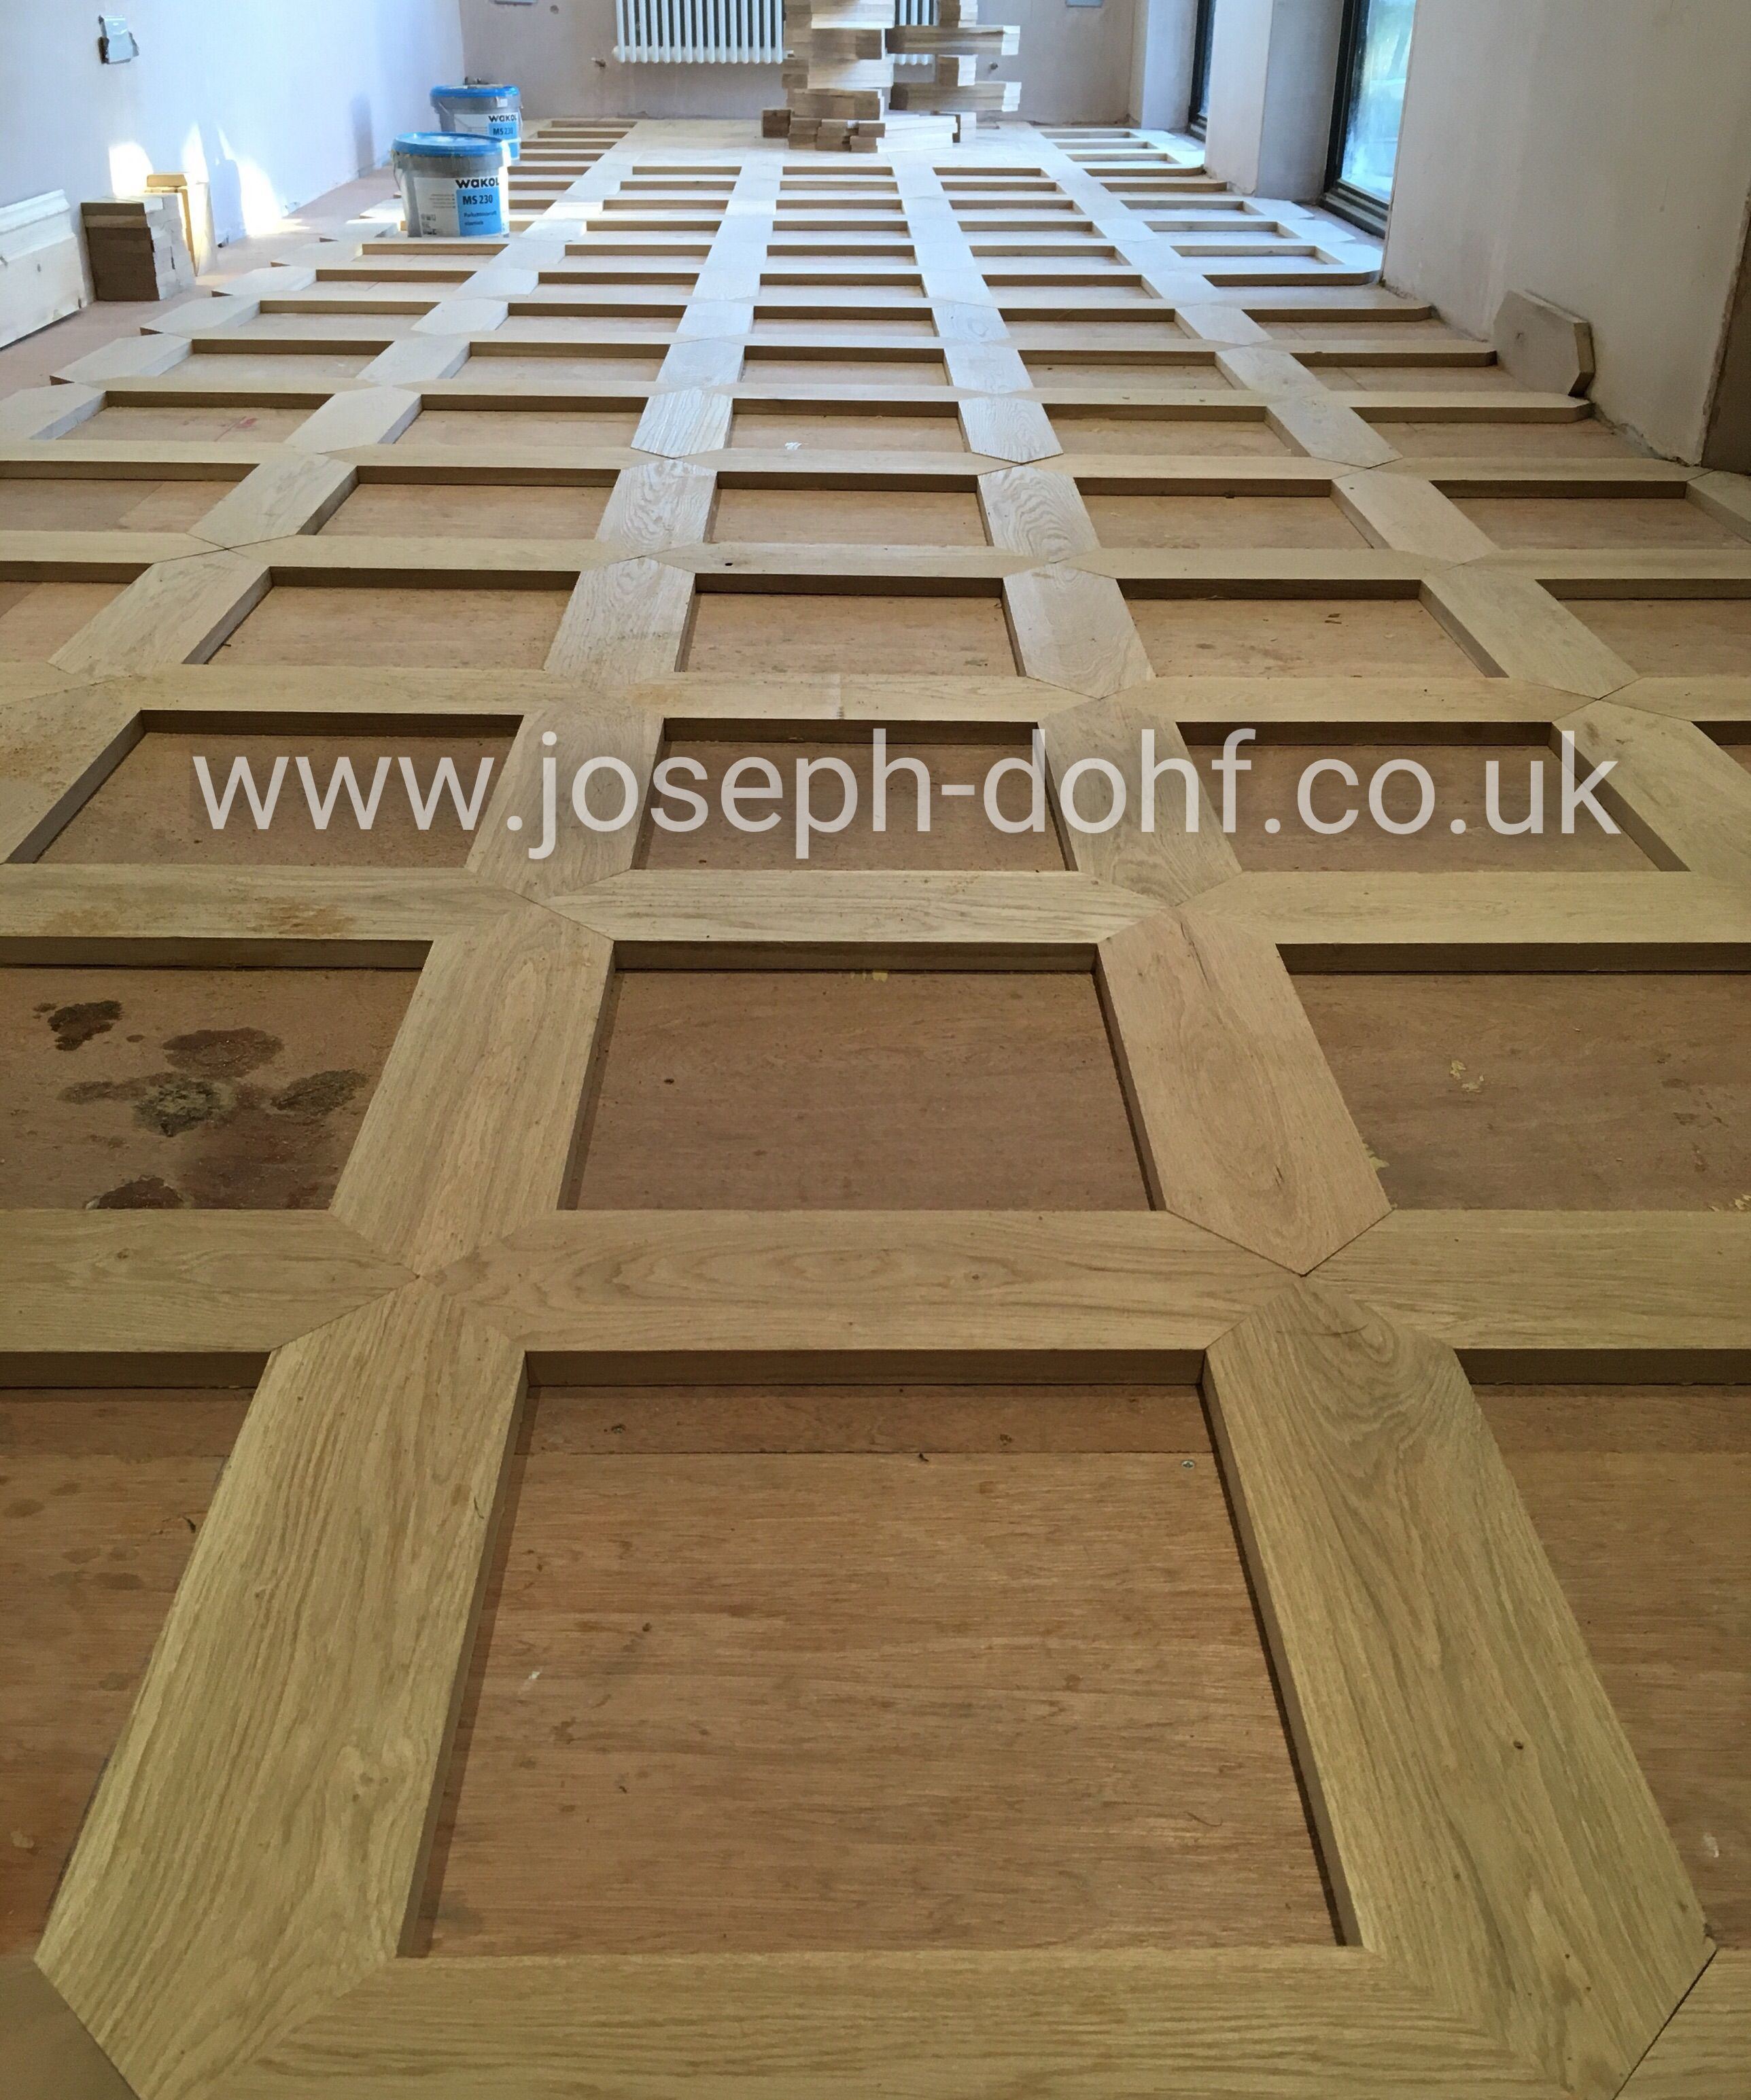 Bespoke Oak Pattern Floor Laying Out The Frame Of The Design